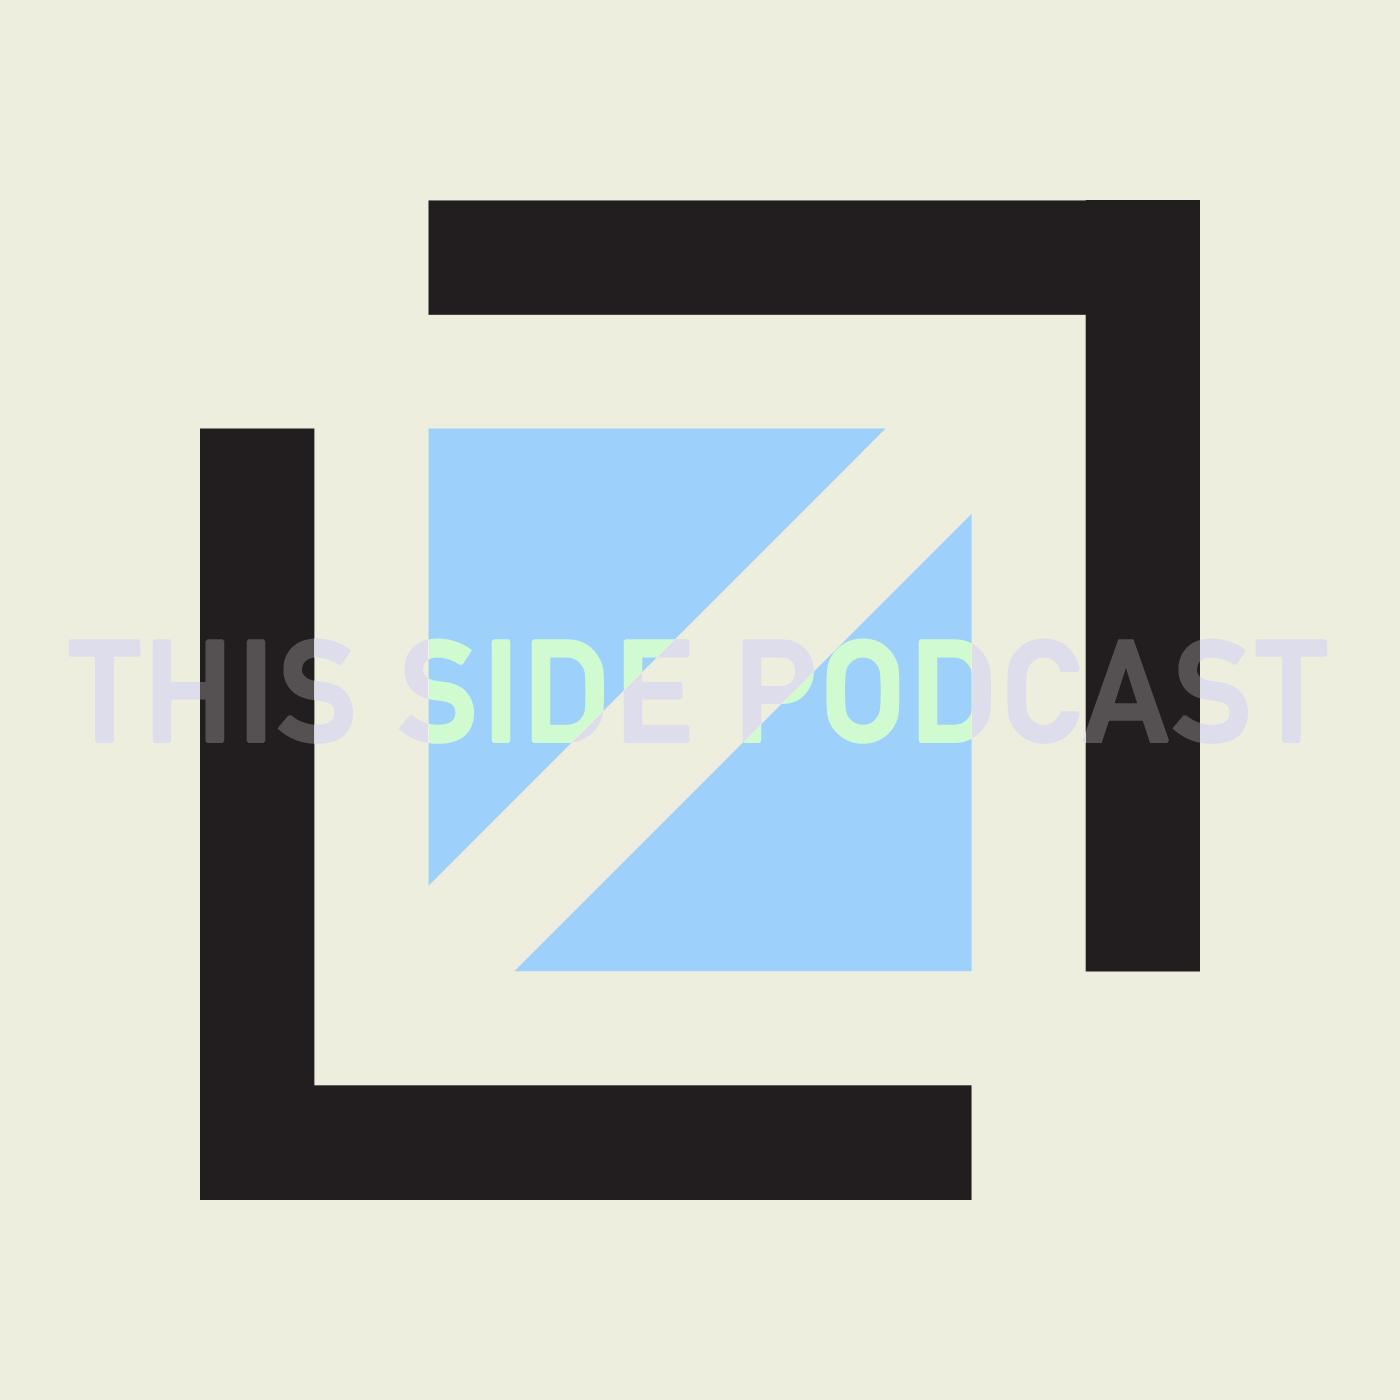 This Side Podcast